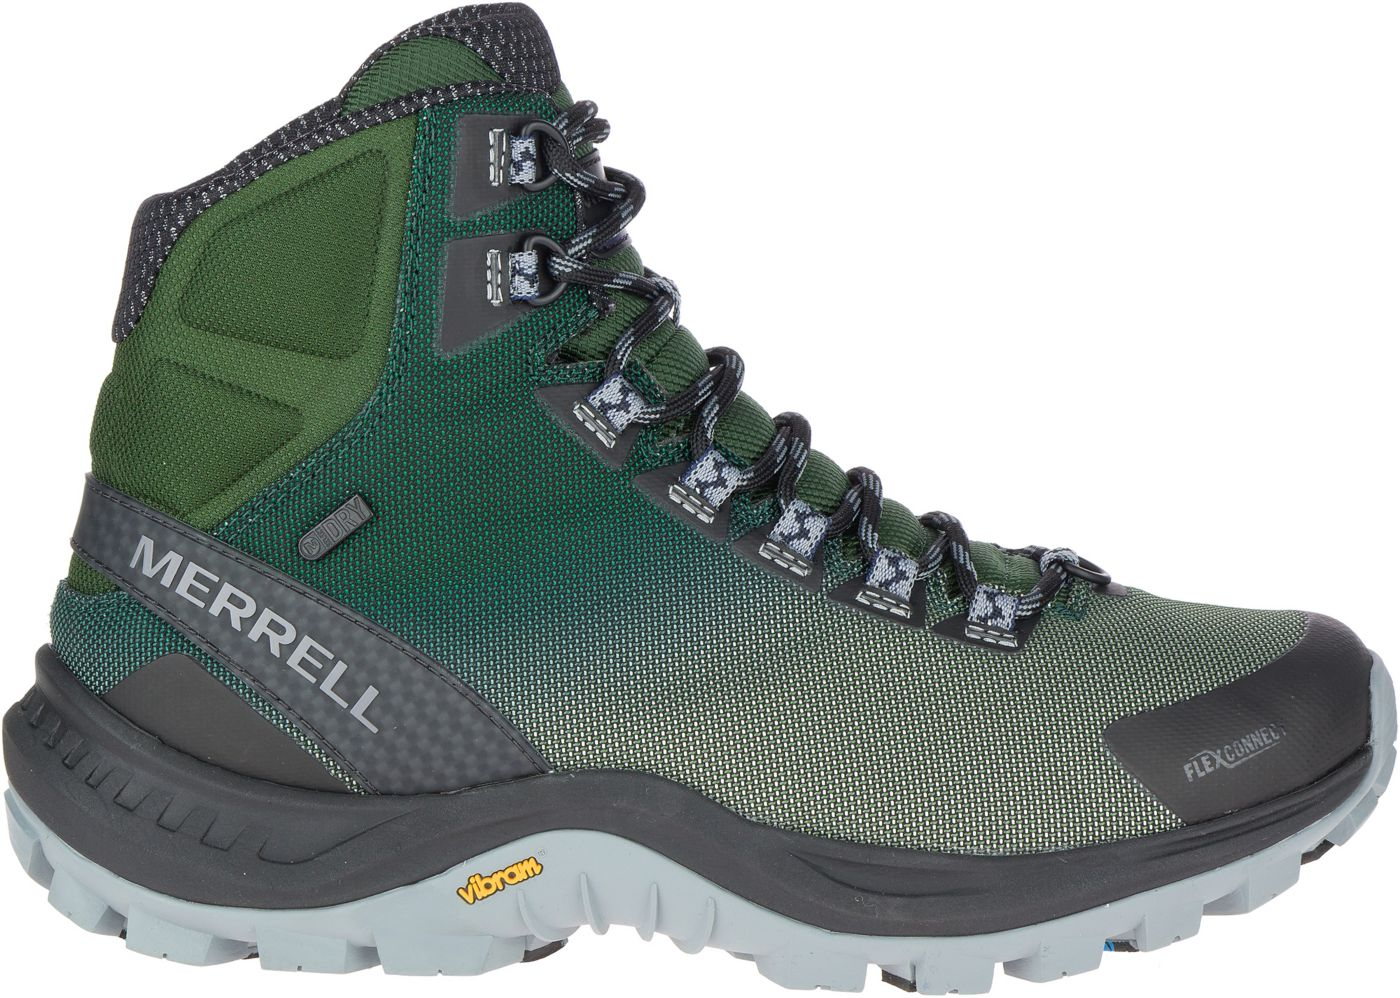 Merrell Men's Thermo Cross 2 Mid 200g Waterproof Hiking Boots